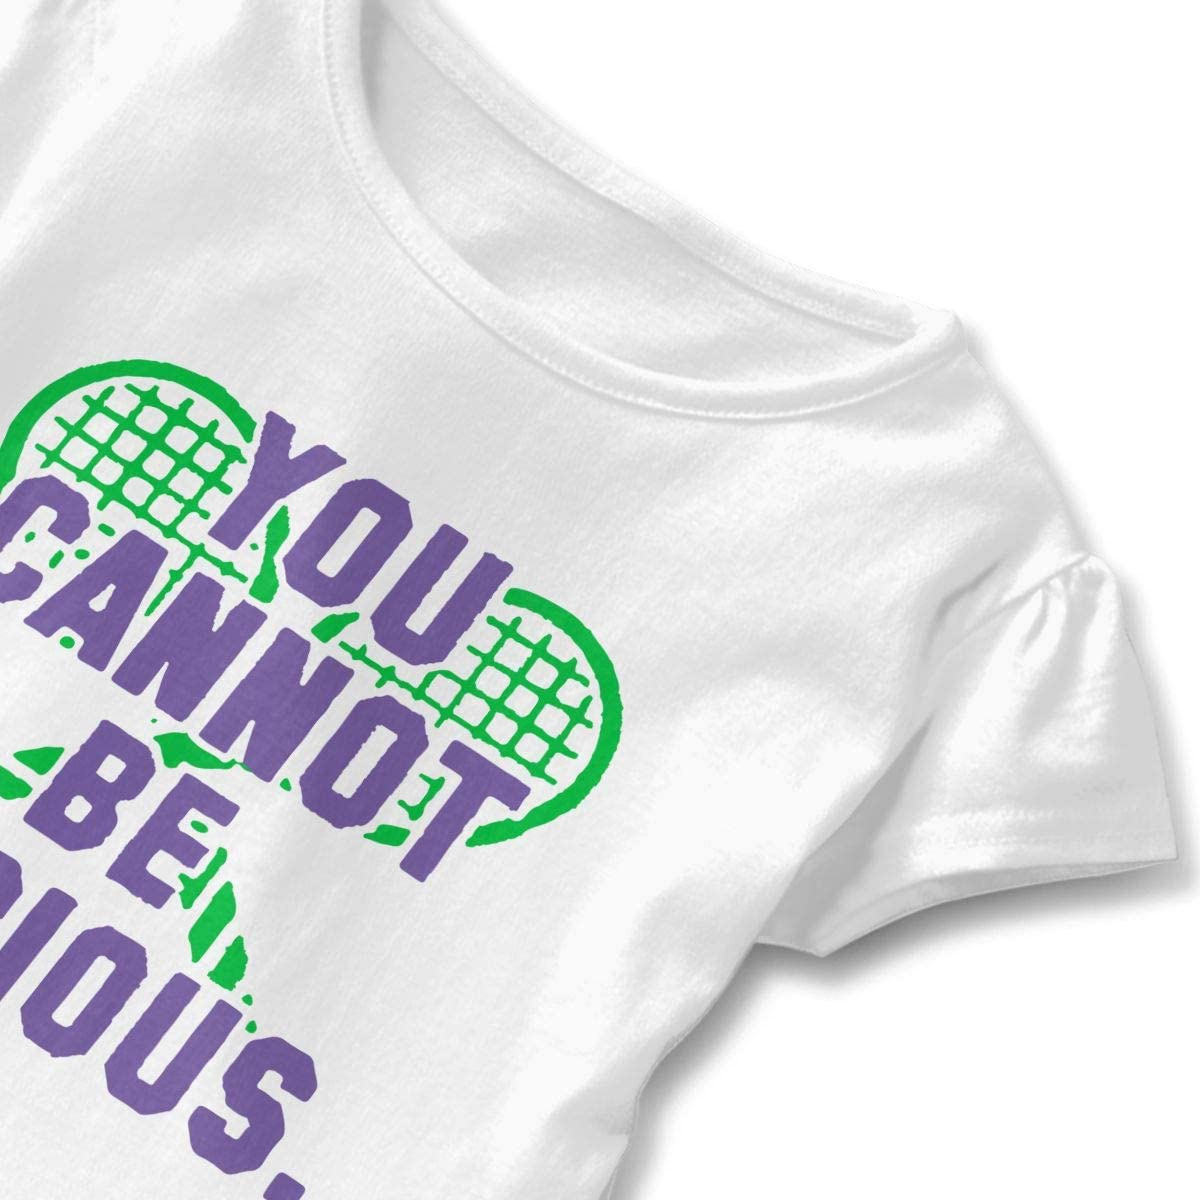 SC/_VD08 Wimbledon Tennis Kids Children Crew Neck Tshirts Top/&Tee